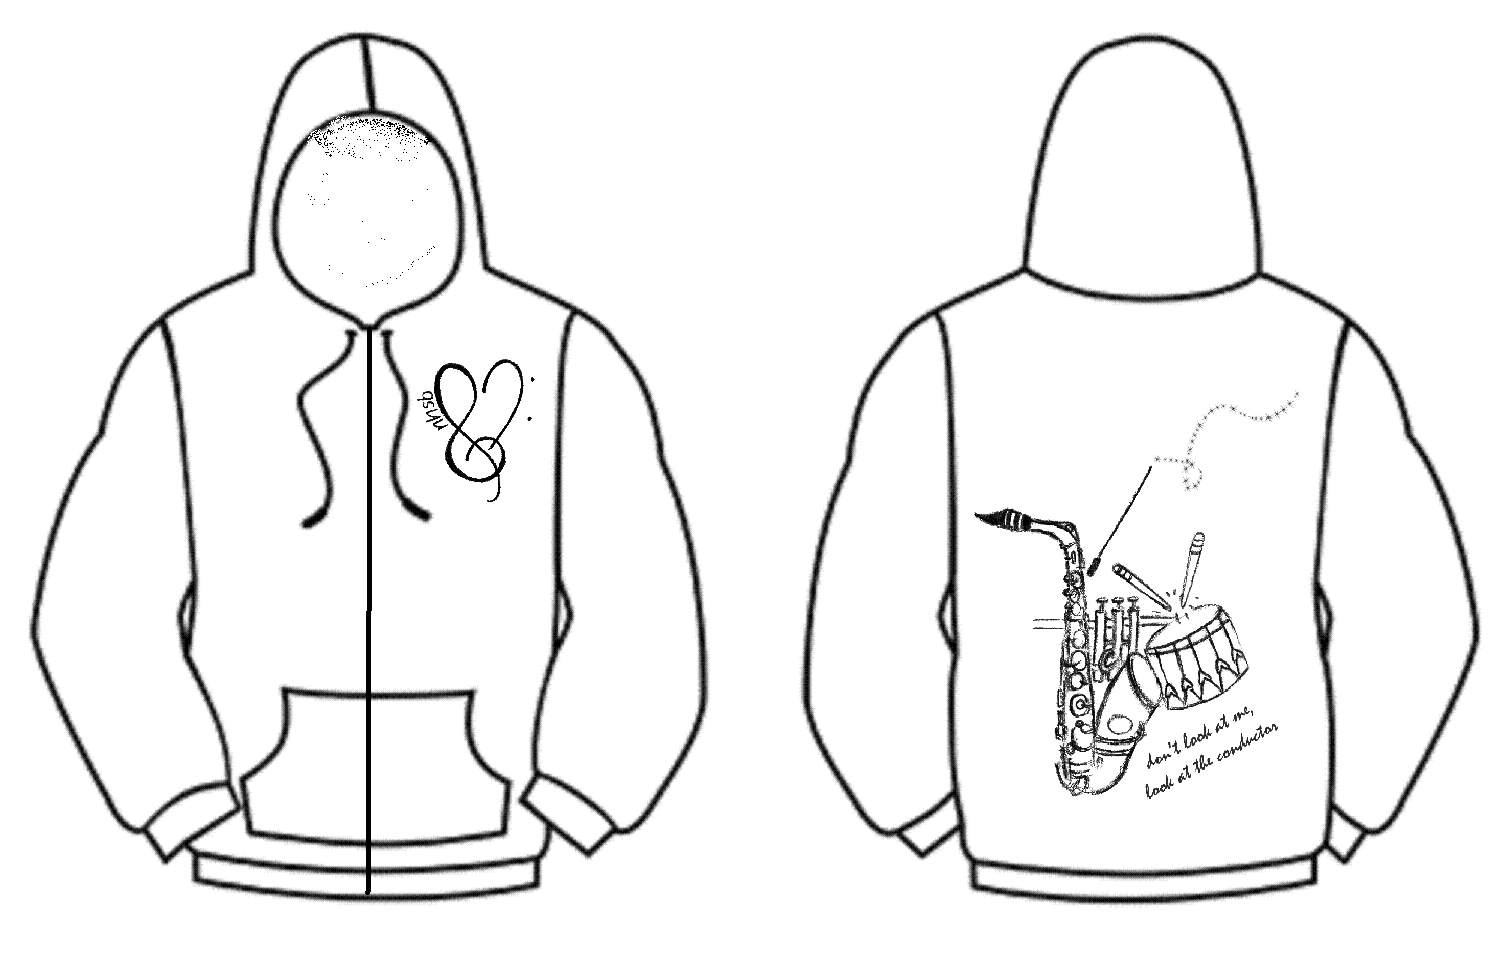 Drawing Jacket Cake Ideas And Designs